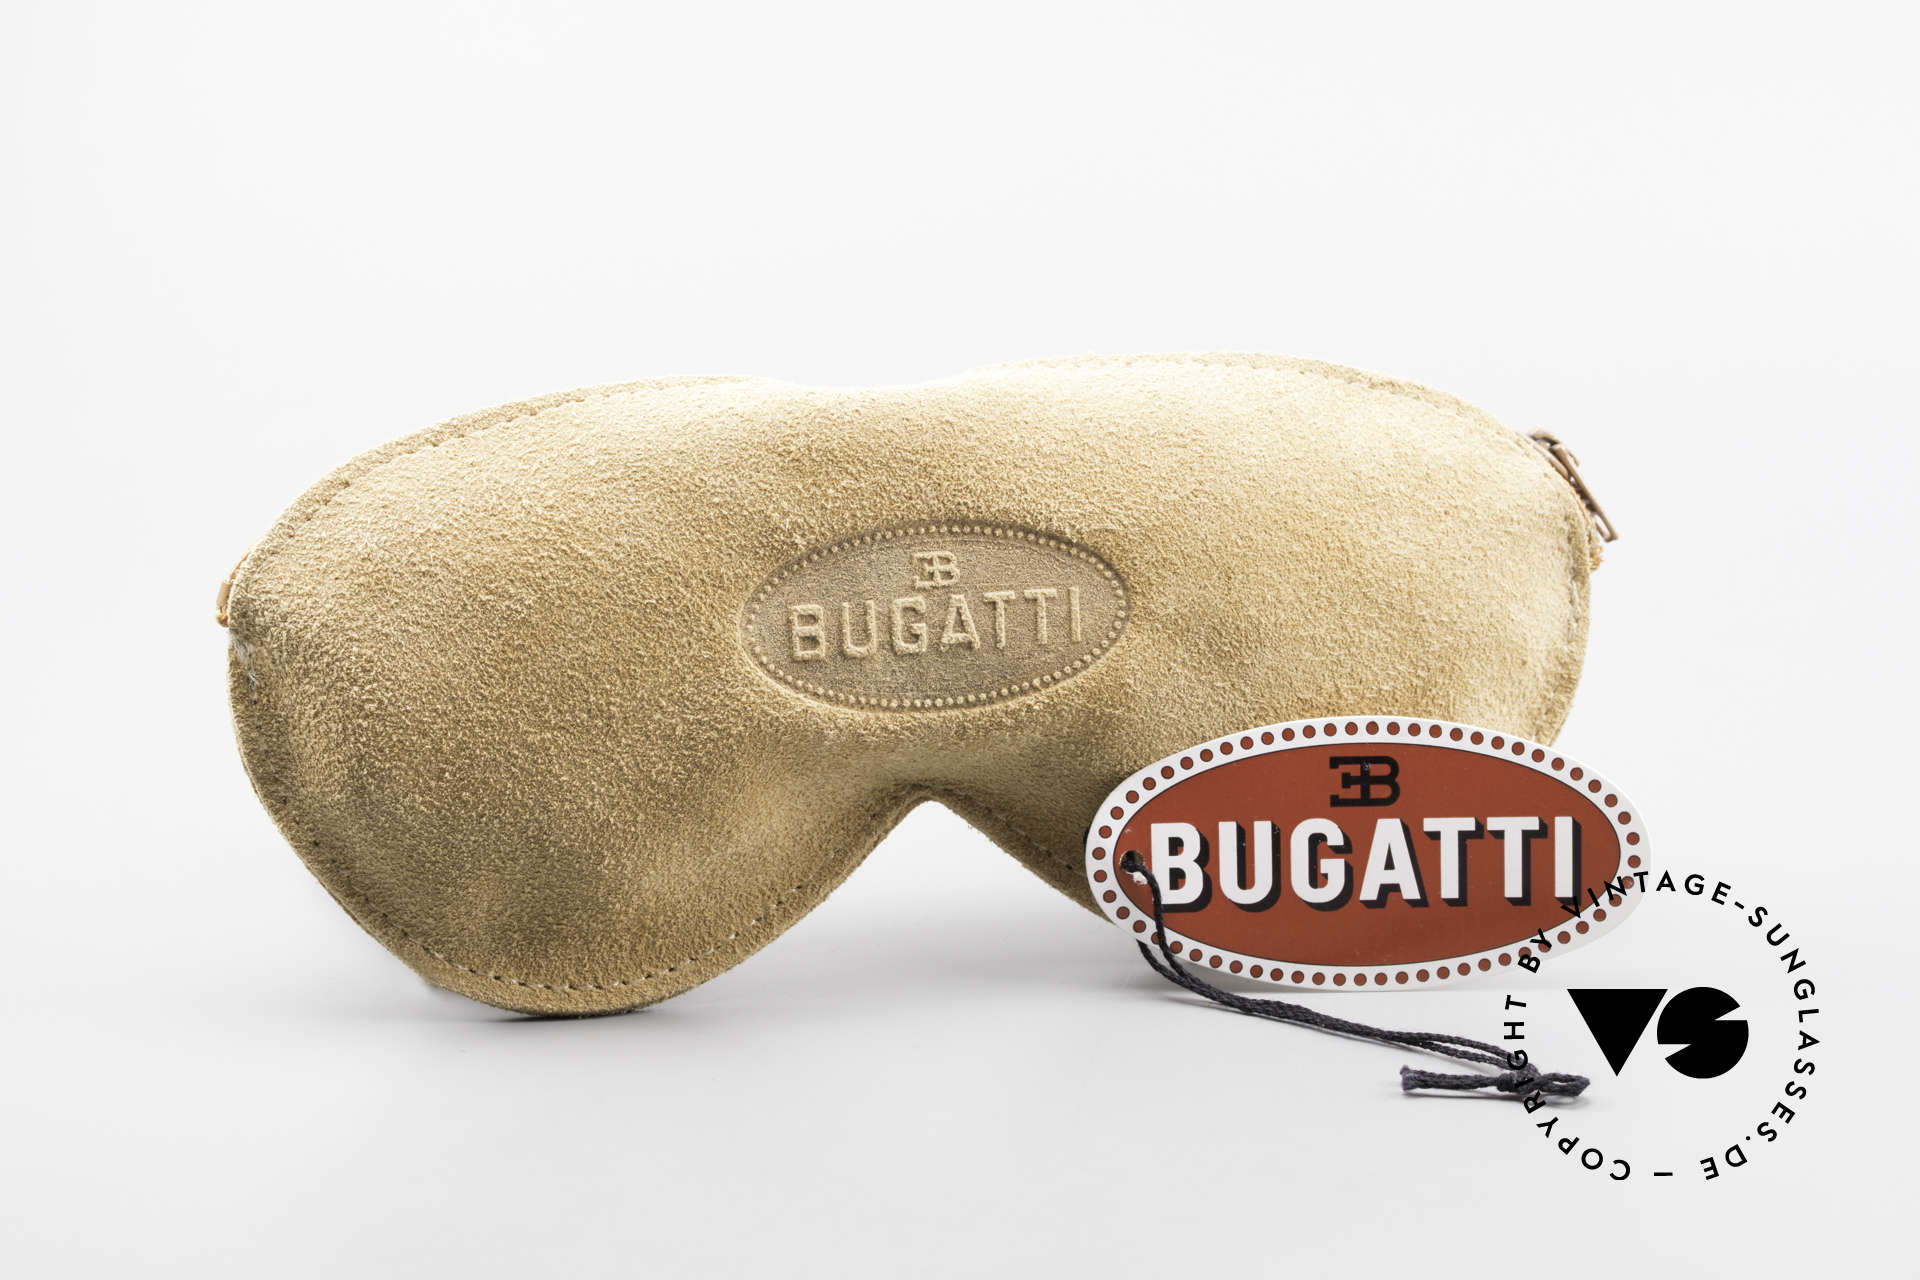 Bugatti 65986 Men's 80's Frame Gold Plated, the frame can be glazed with lenses of any kind, Made for Men